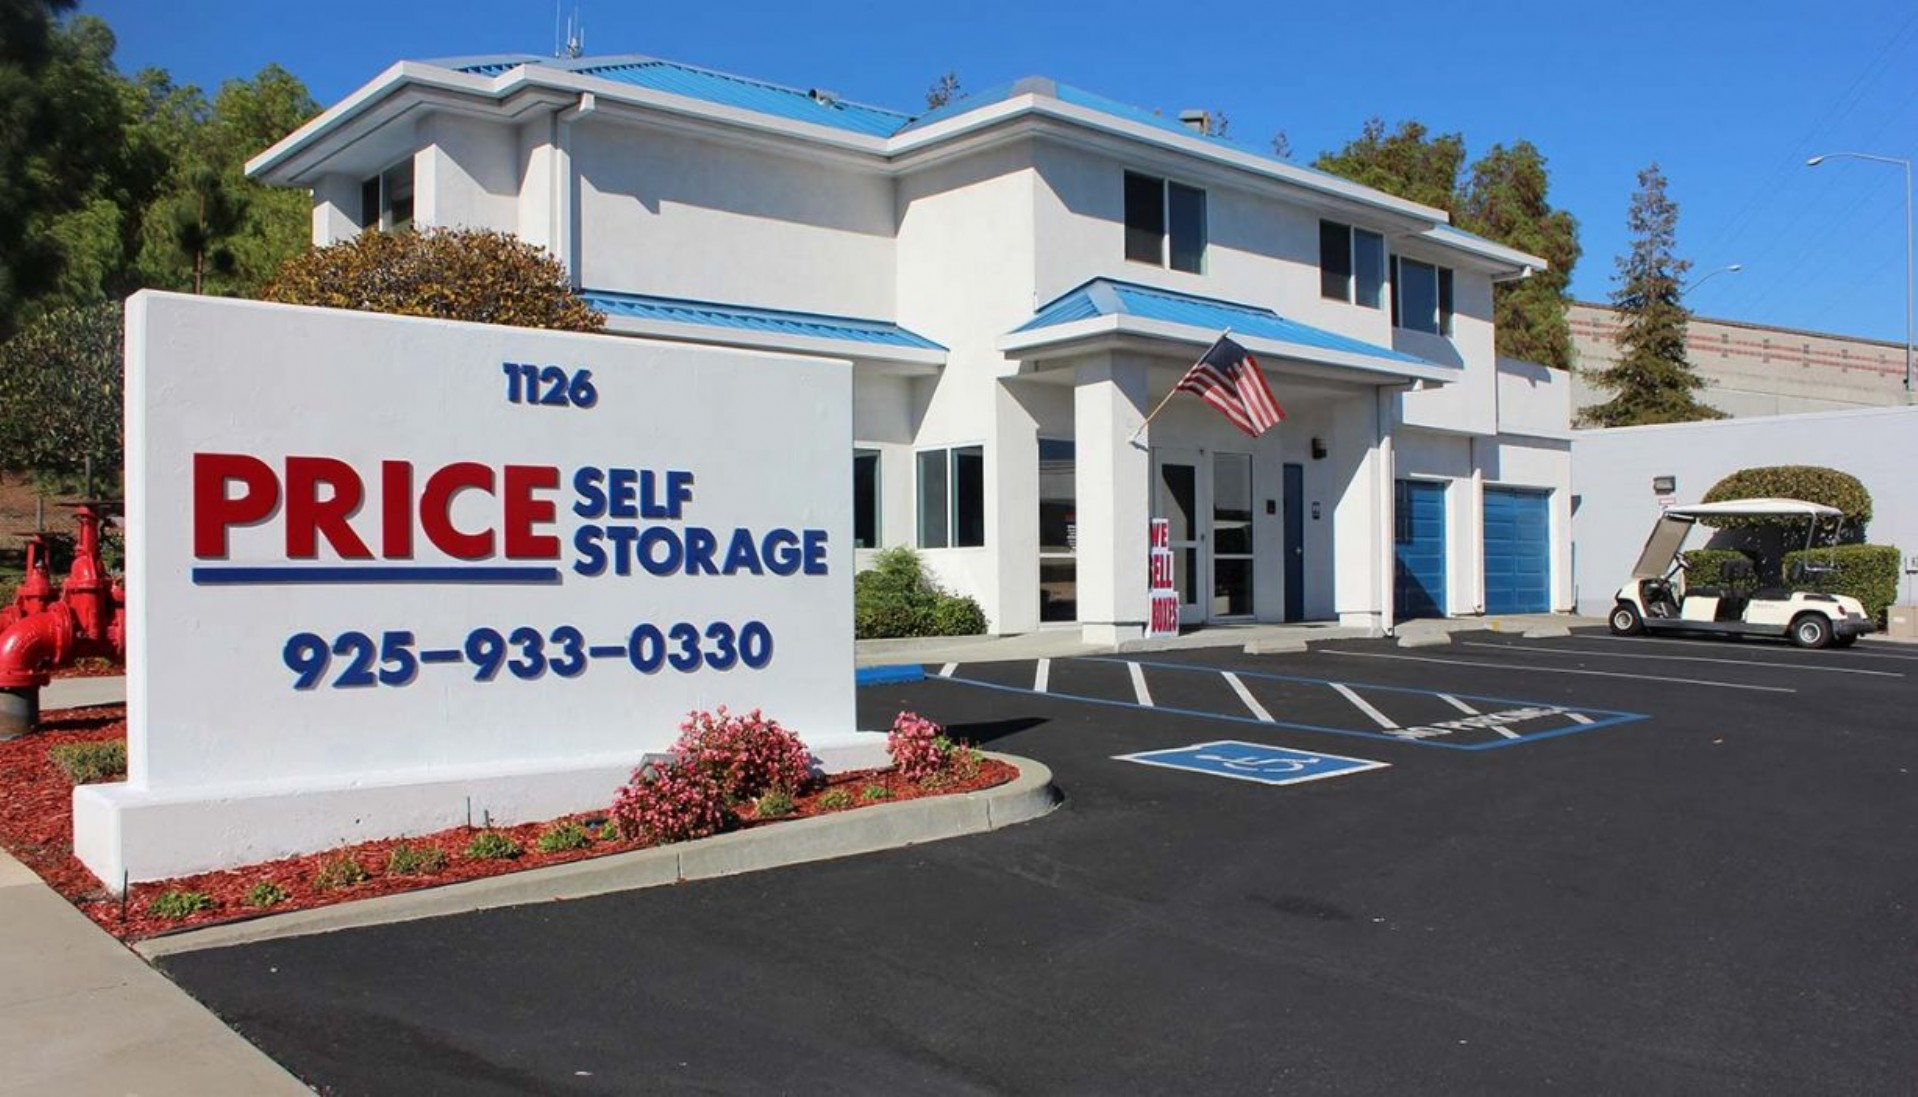 Price Self Storage Walnut Creek Wine Storage - main parking lot, rental office entrance and monument sign